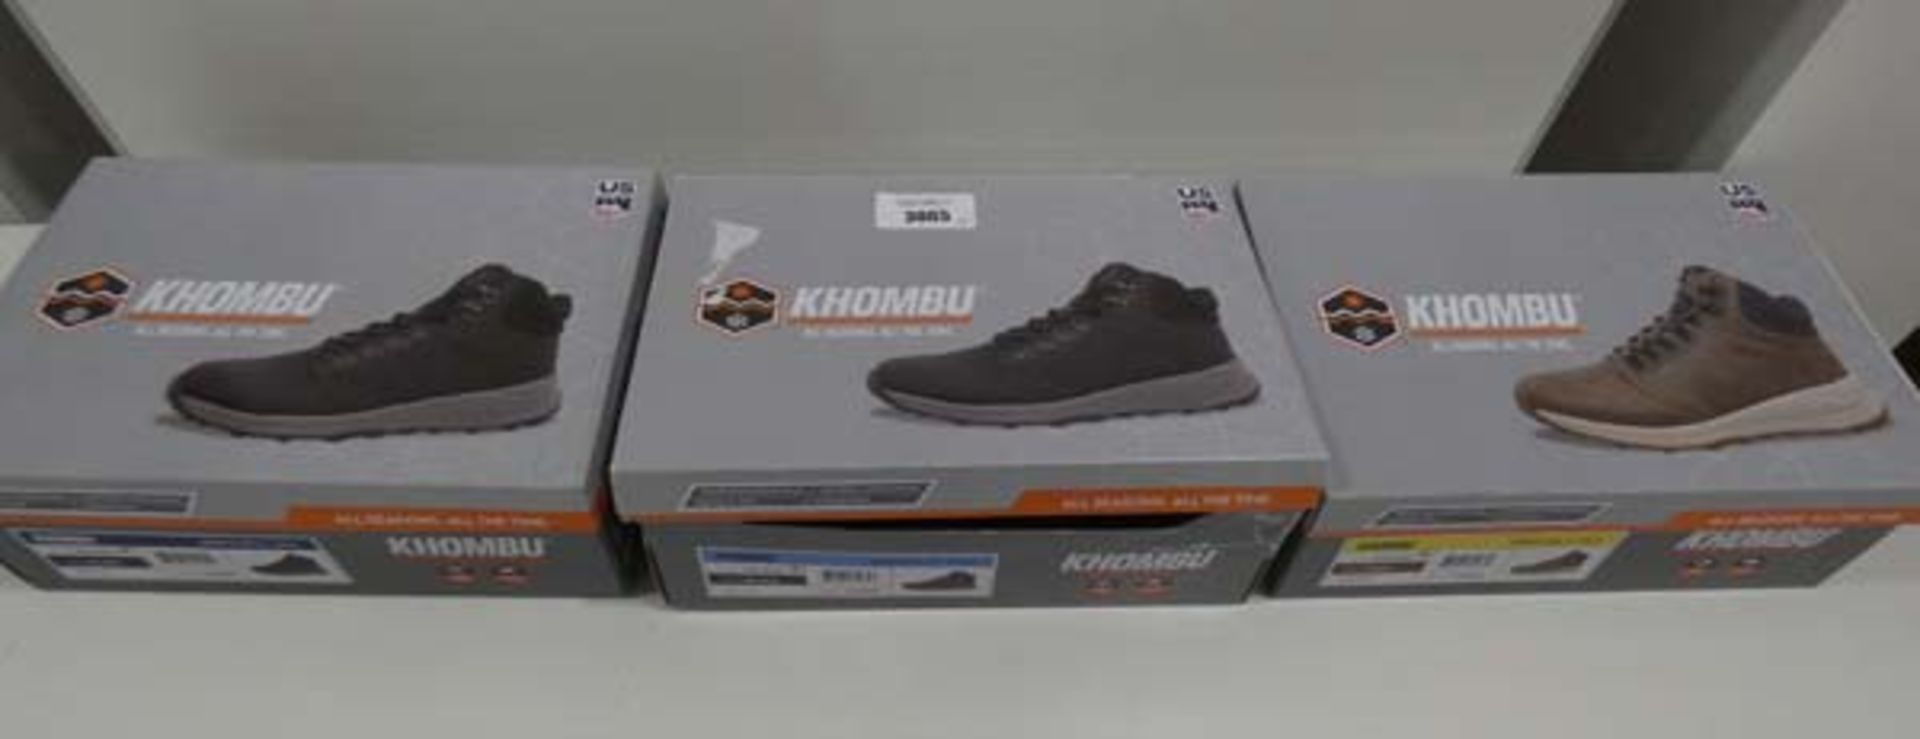 3 pairs of mens Khombu boots sizes 7, 8 and 12, in black and brown